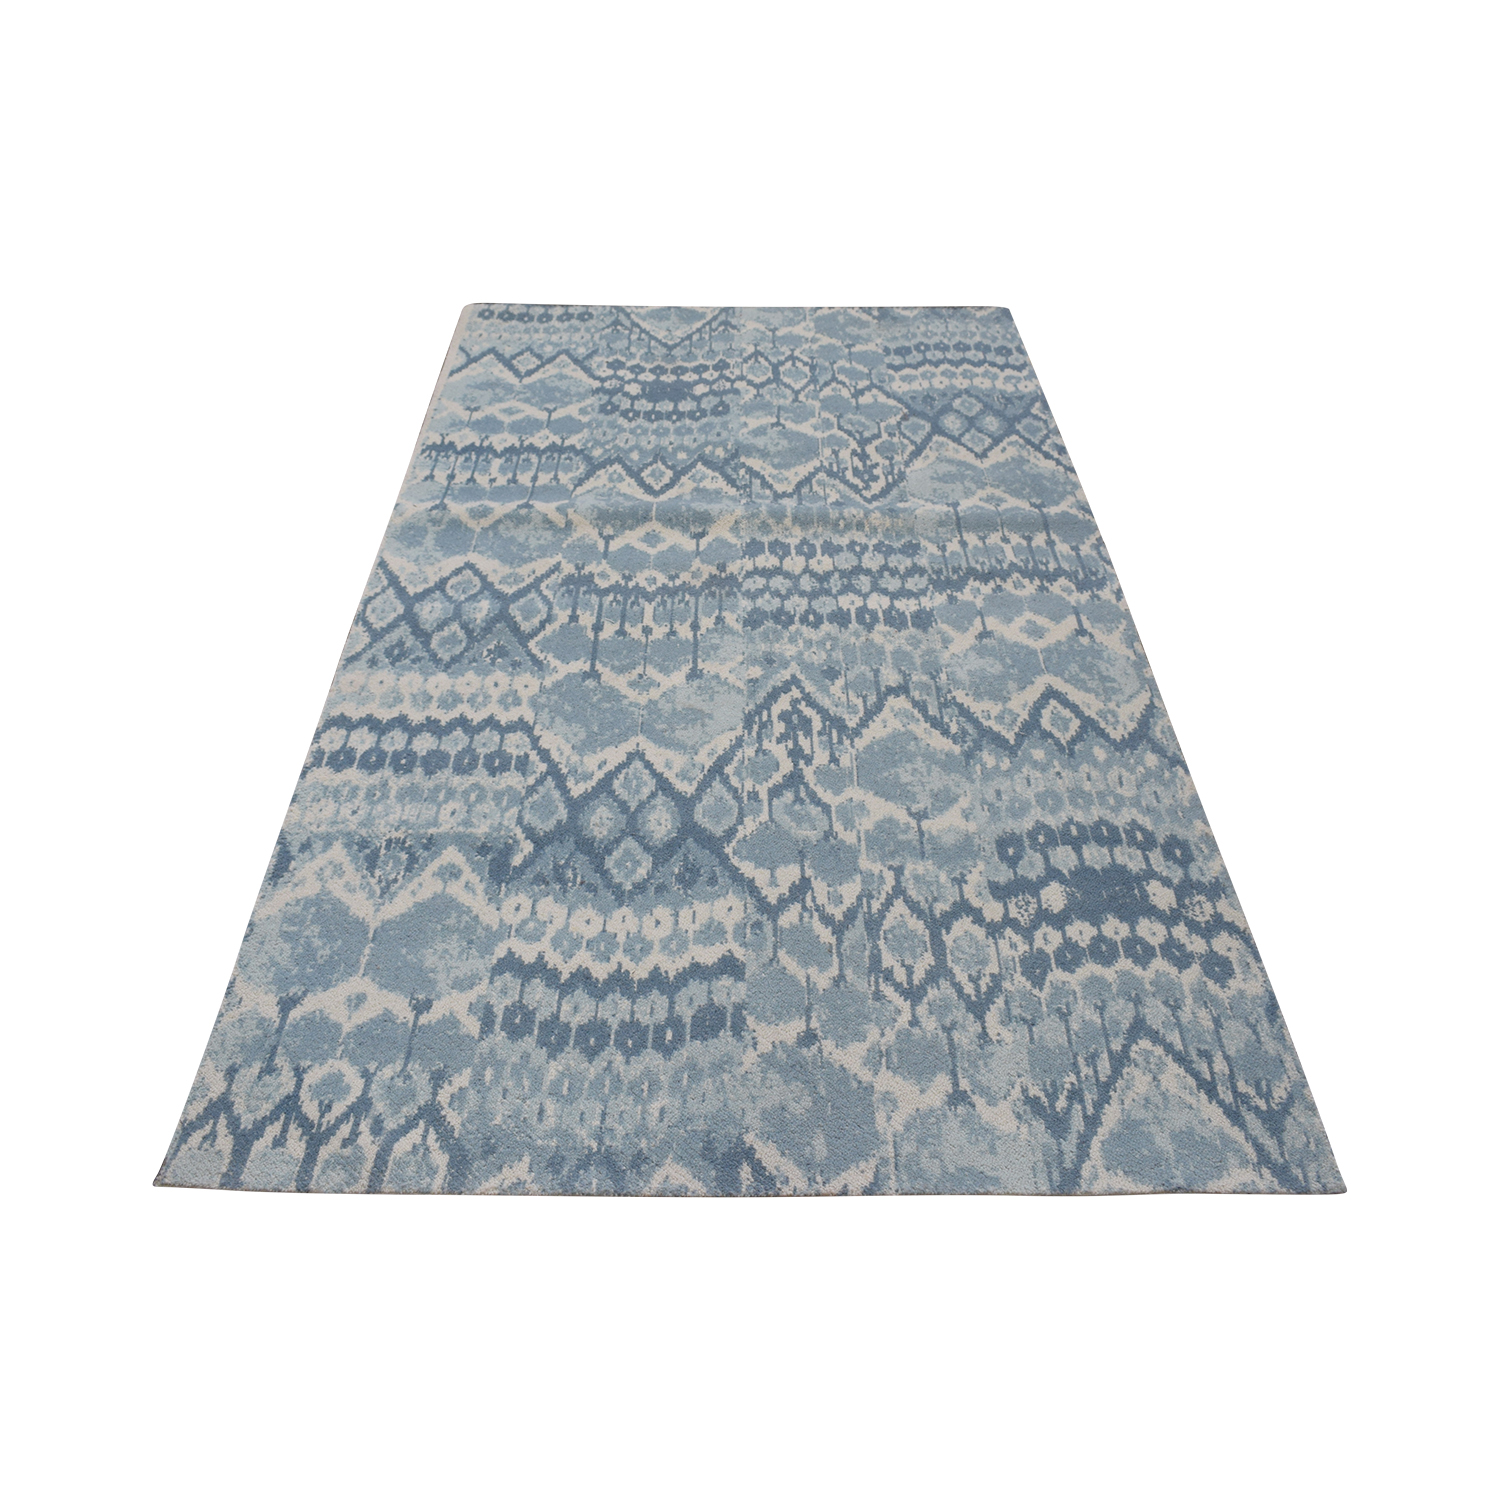 Obeetee Obeetee Handtufted Rug with Printed Ikat nj